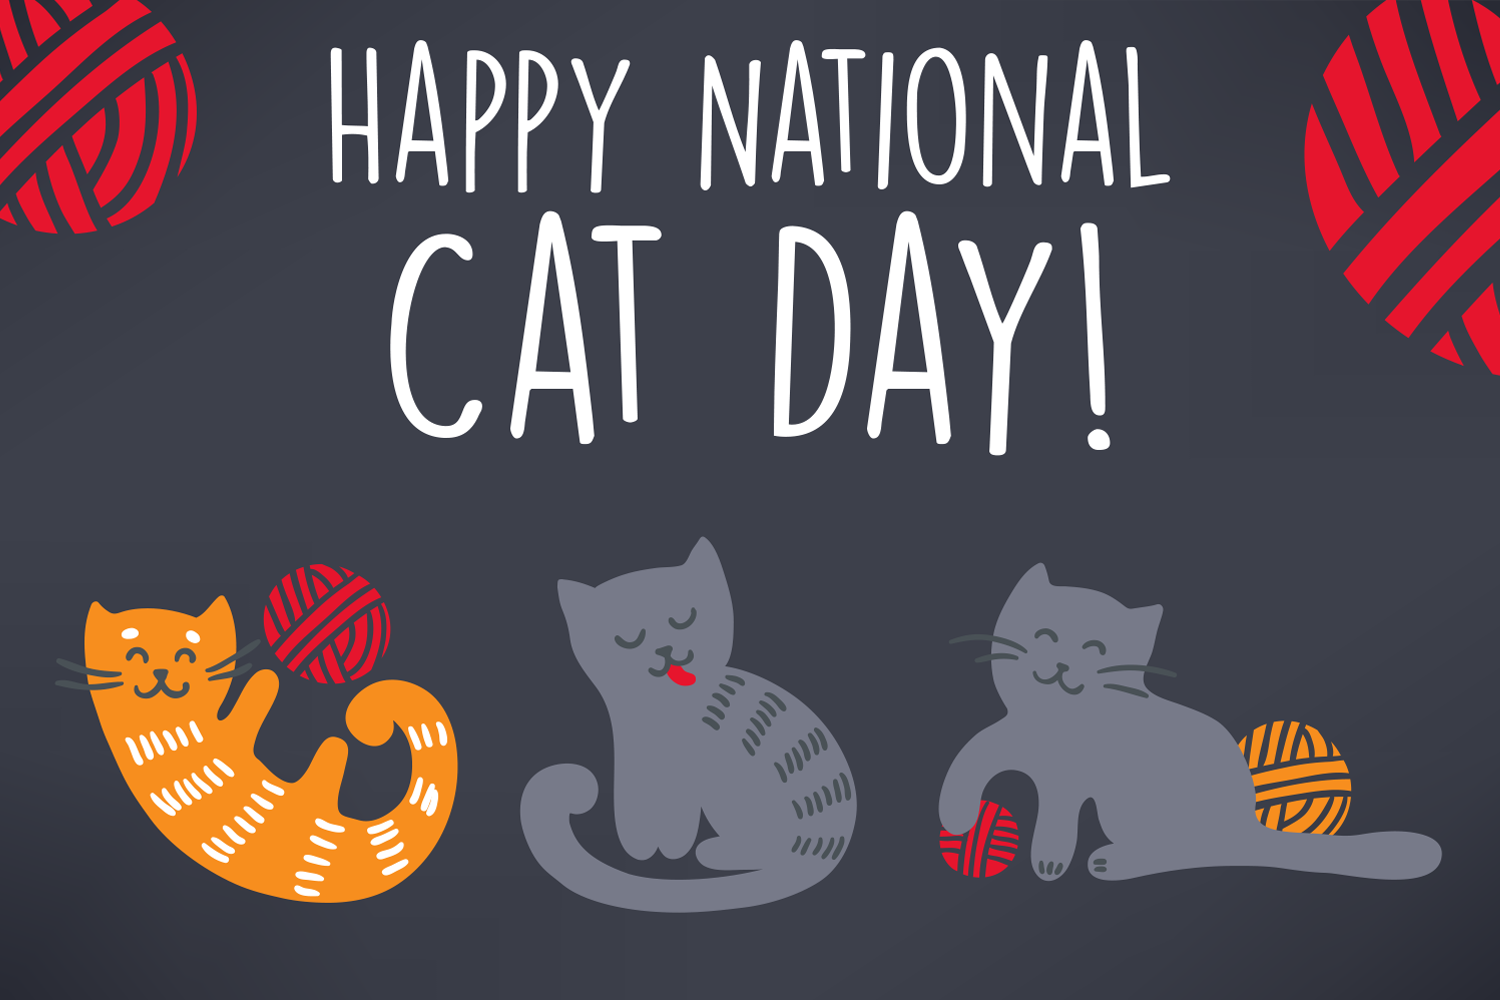 National Cat Day Wishes Pics